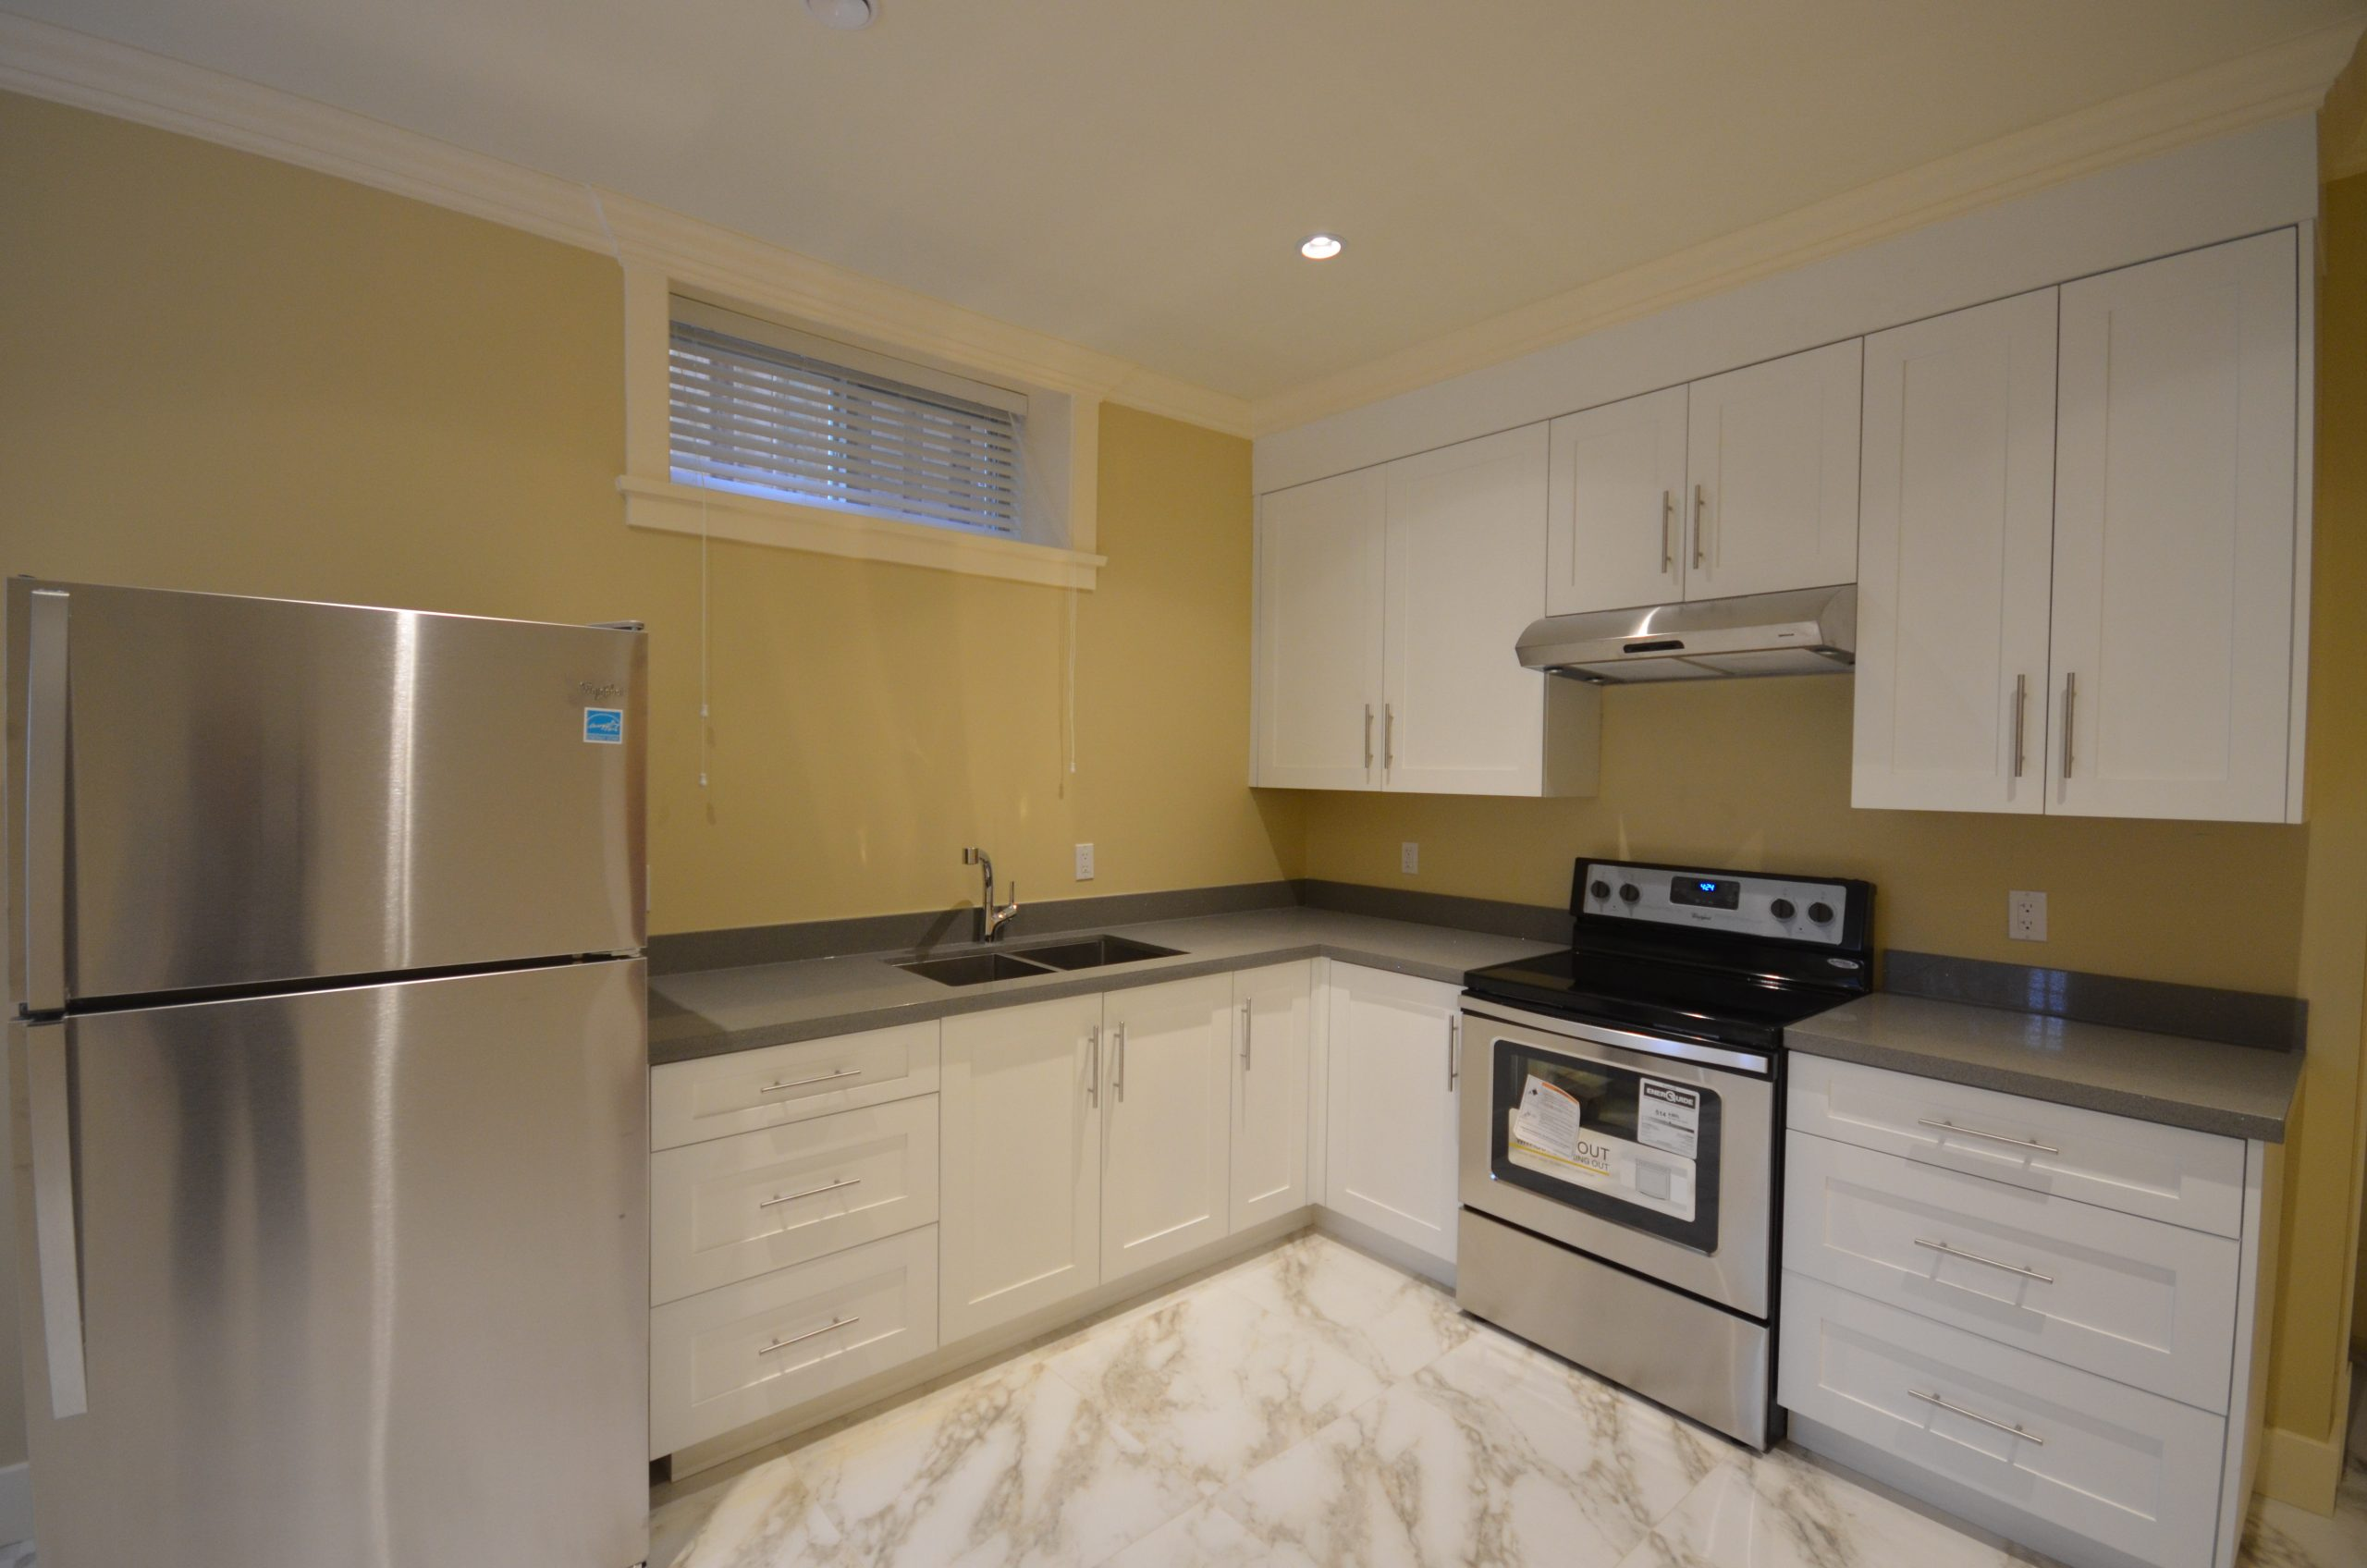 [LEASED] Vancouver – 2 Bed – 1 Bath – 900 sq ft – Basement Suite of House